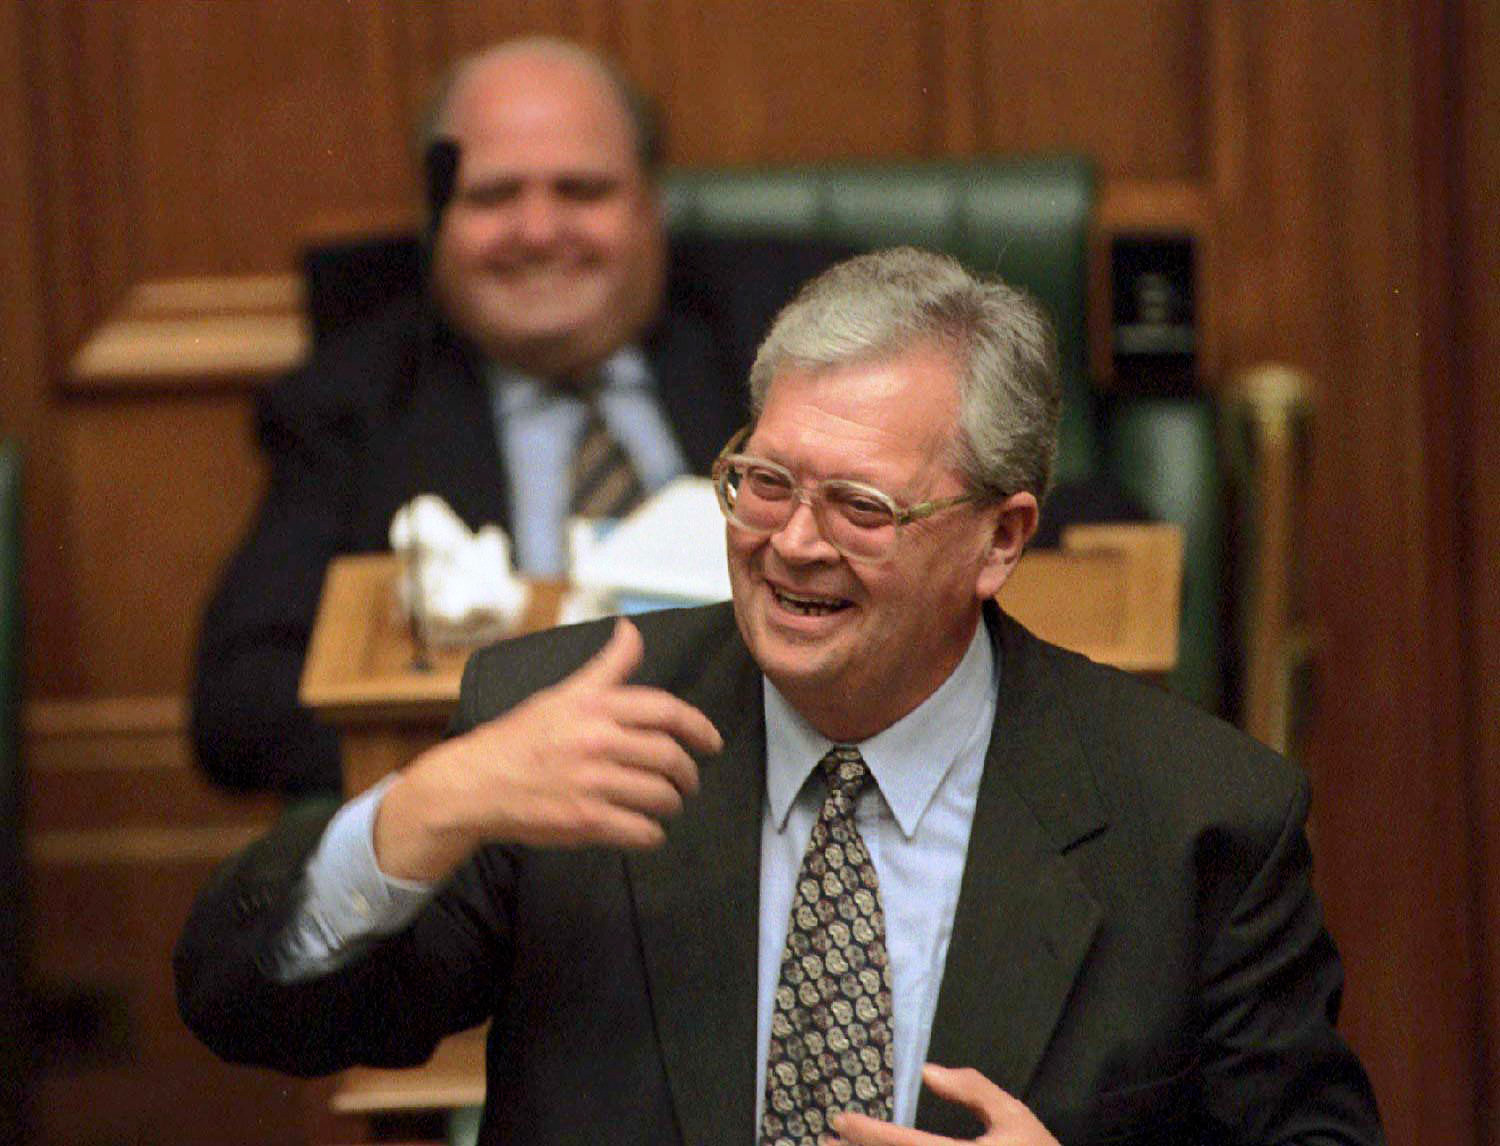 Former prime minister David Lange gives his valedictory speech in parliament. Photo: Getty.